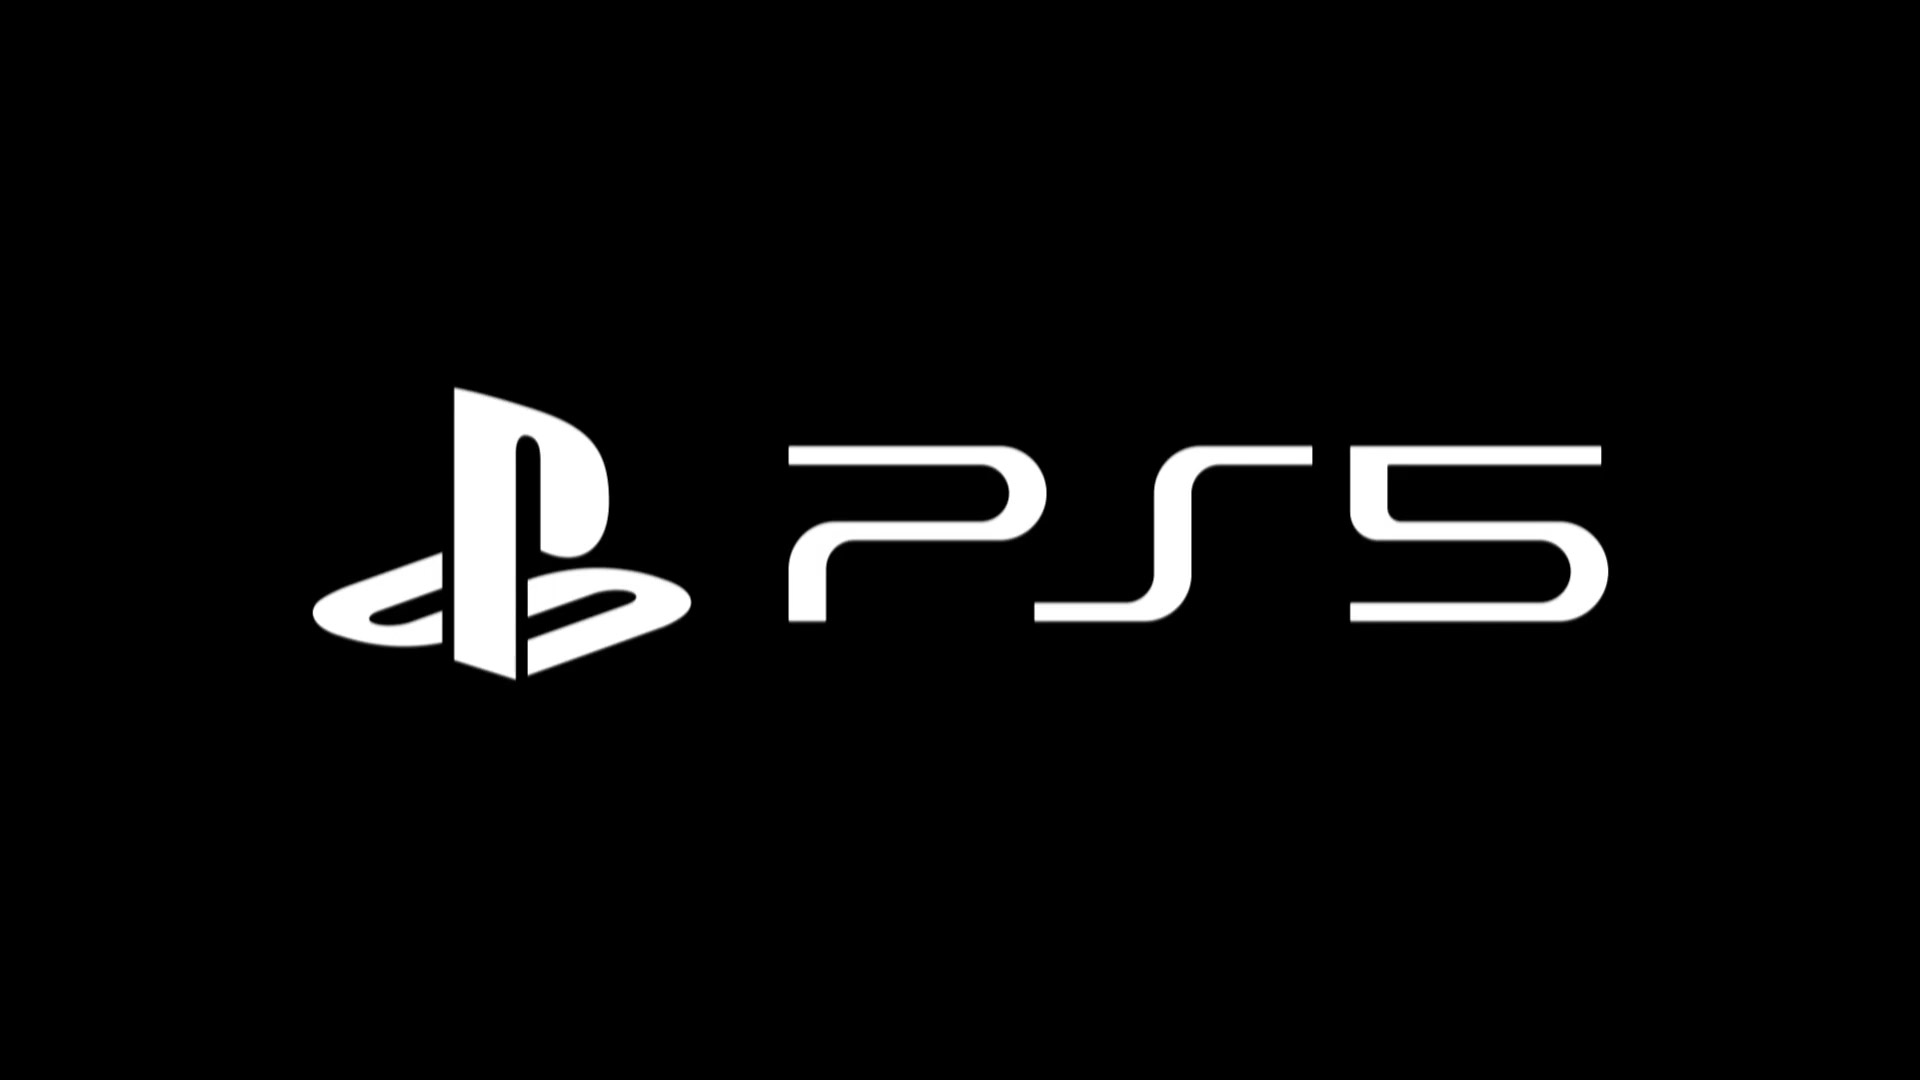 PlayStation is skipping E3 again this year screenshot